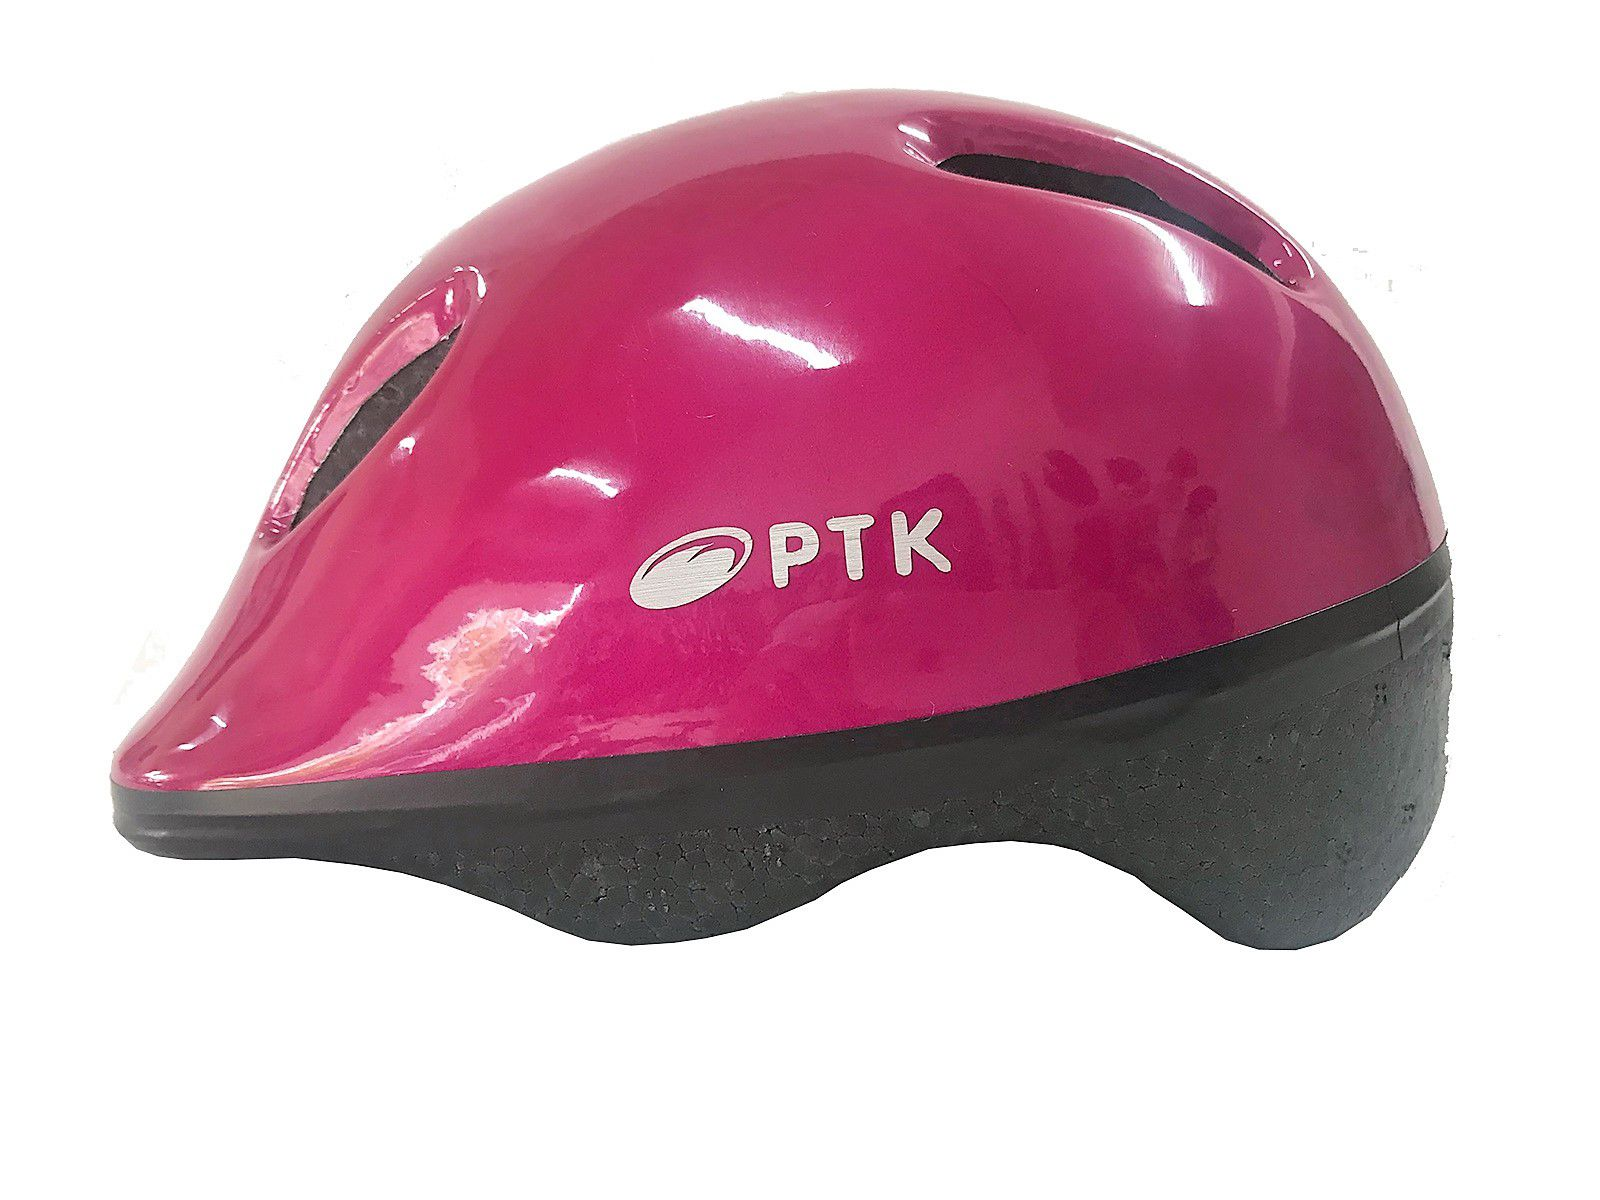 Capacete Ciclismo Infantil Baby PTK